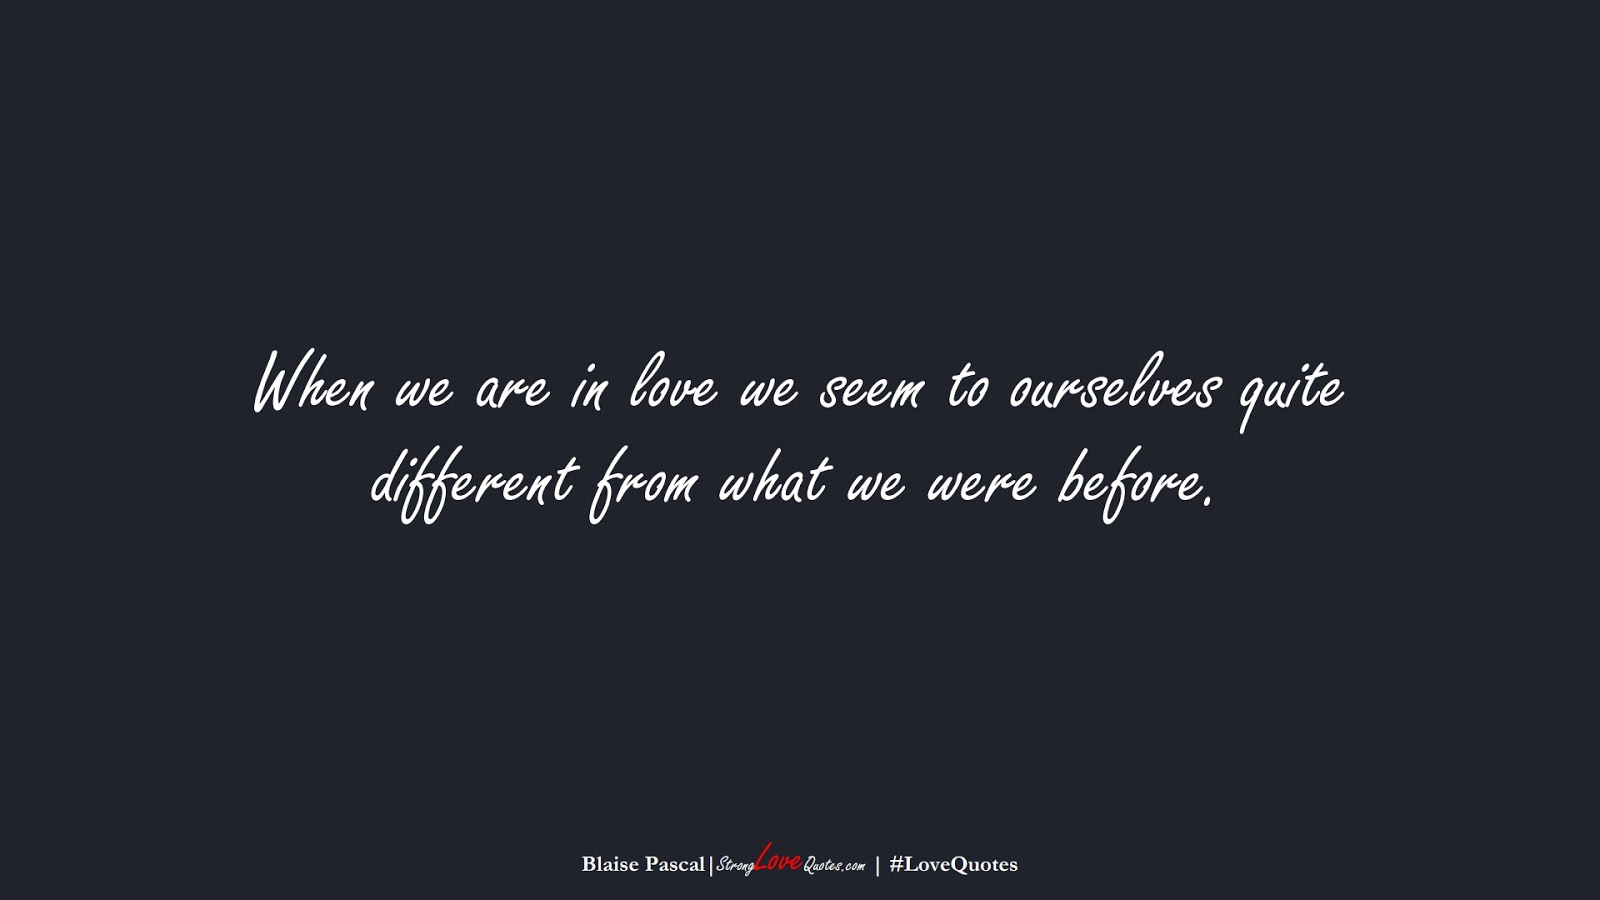 When we are in love we seem to ourselves quite different from what we were before. (Blaise Pascal);  #LoveQuotes